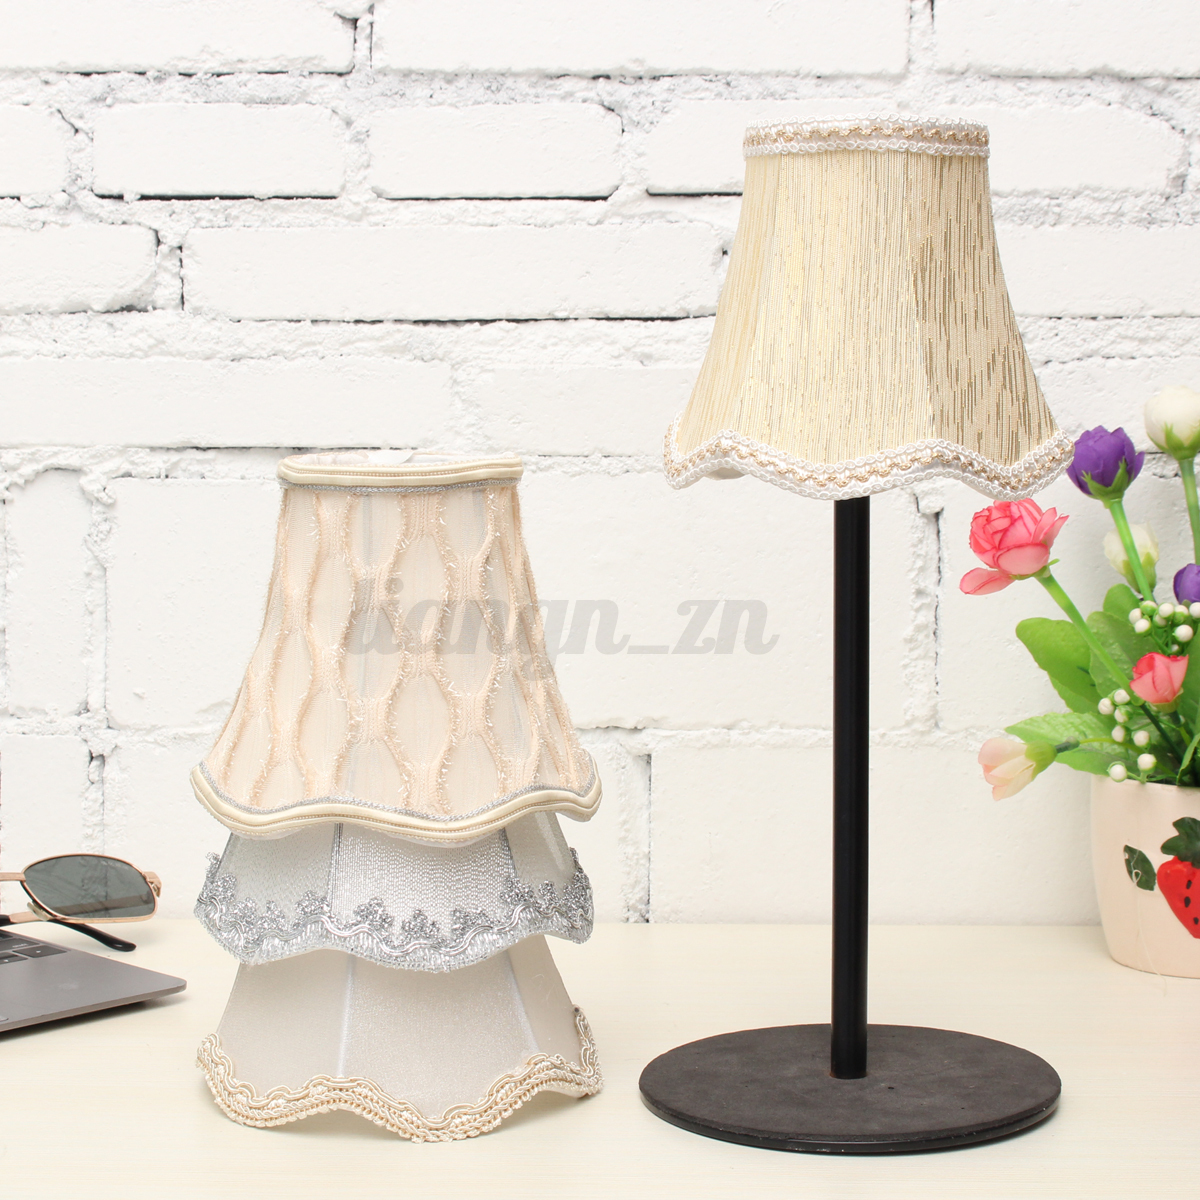 vintage abat jour fleur tissu dentelle lampshade pendentif mural lampe table ebay. Black Bedroom Furniture Sets. Home Design Ideas